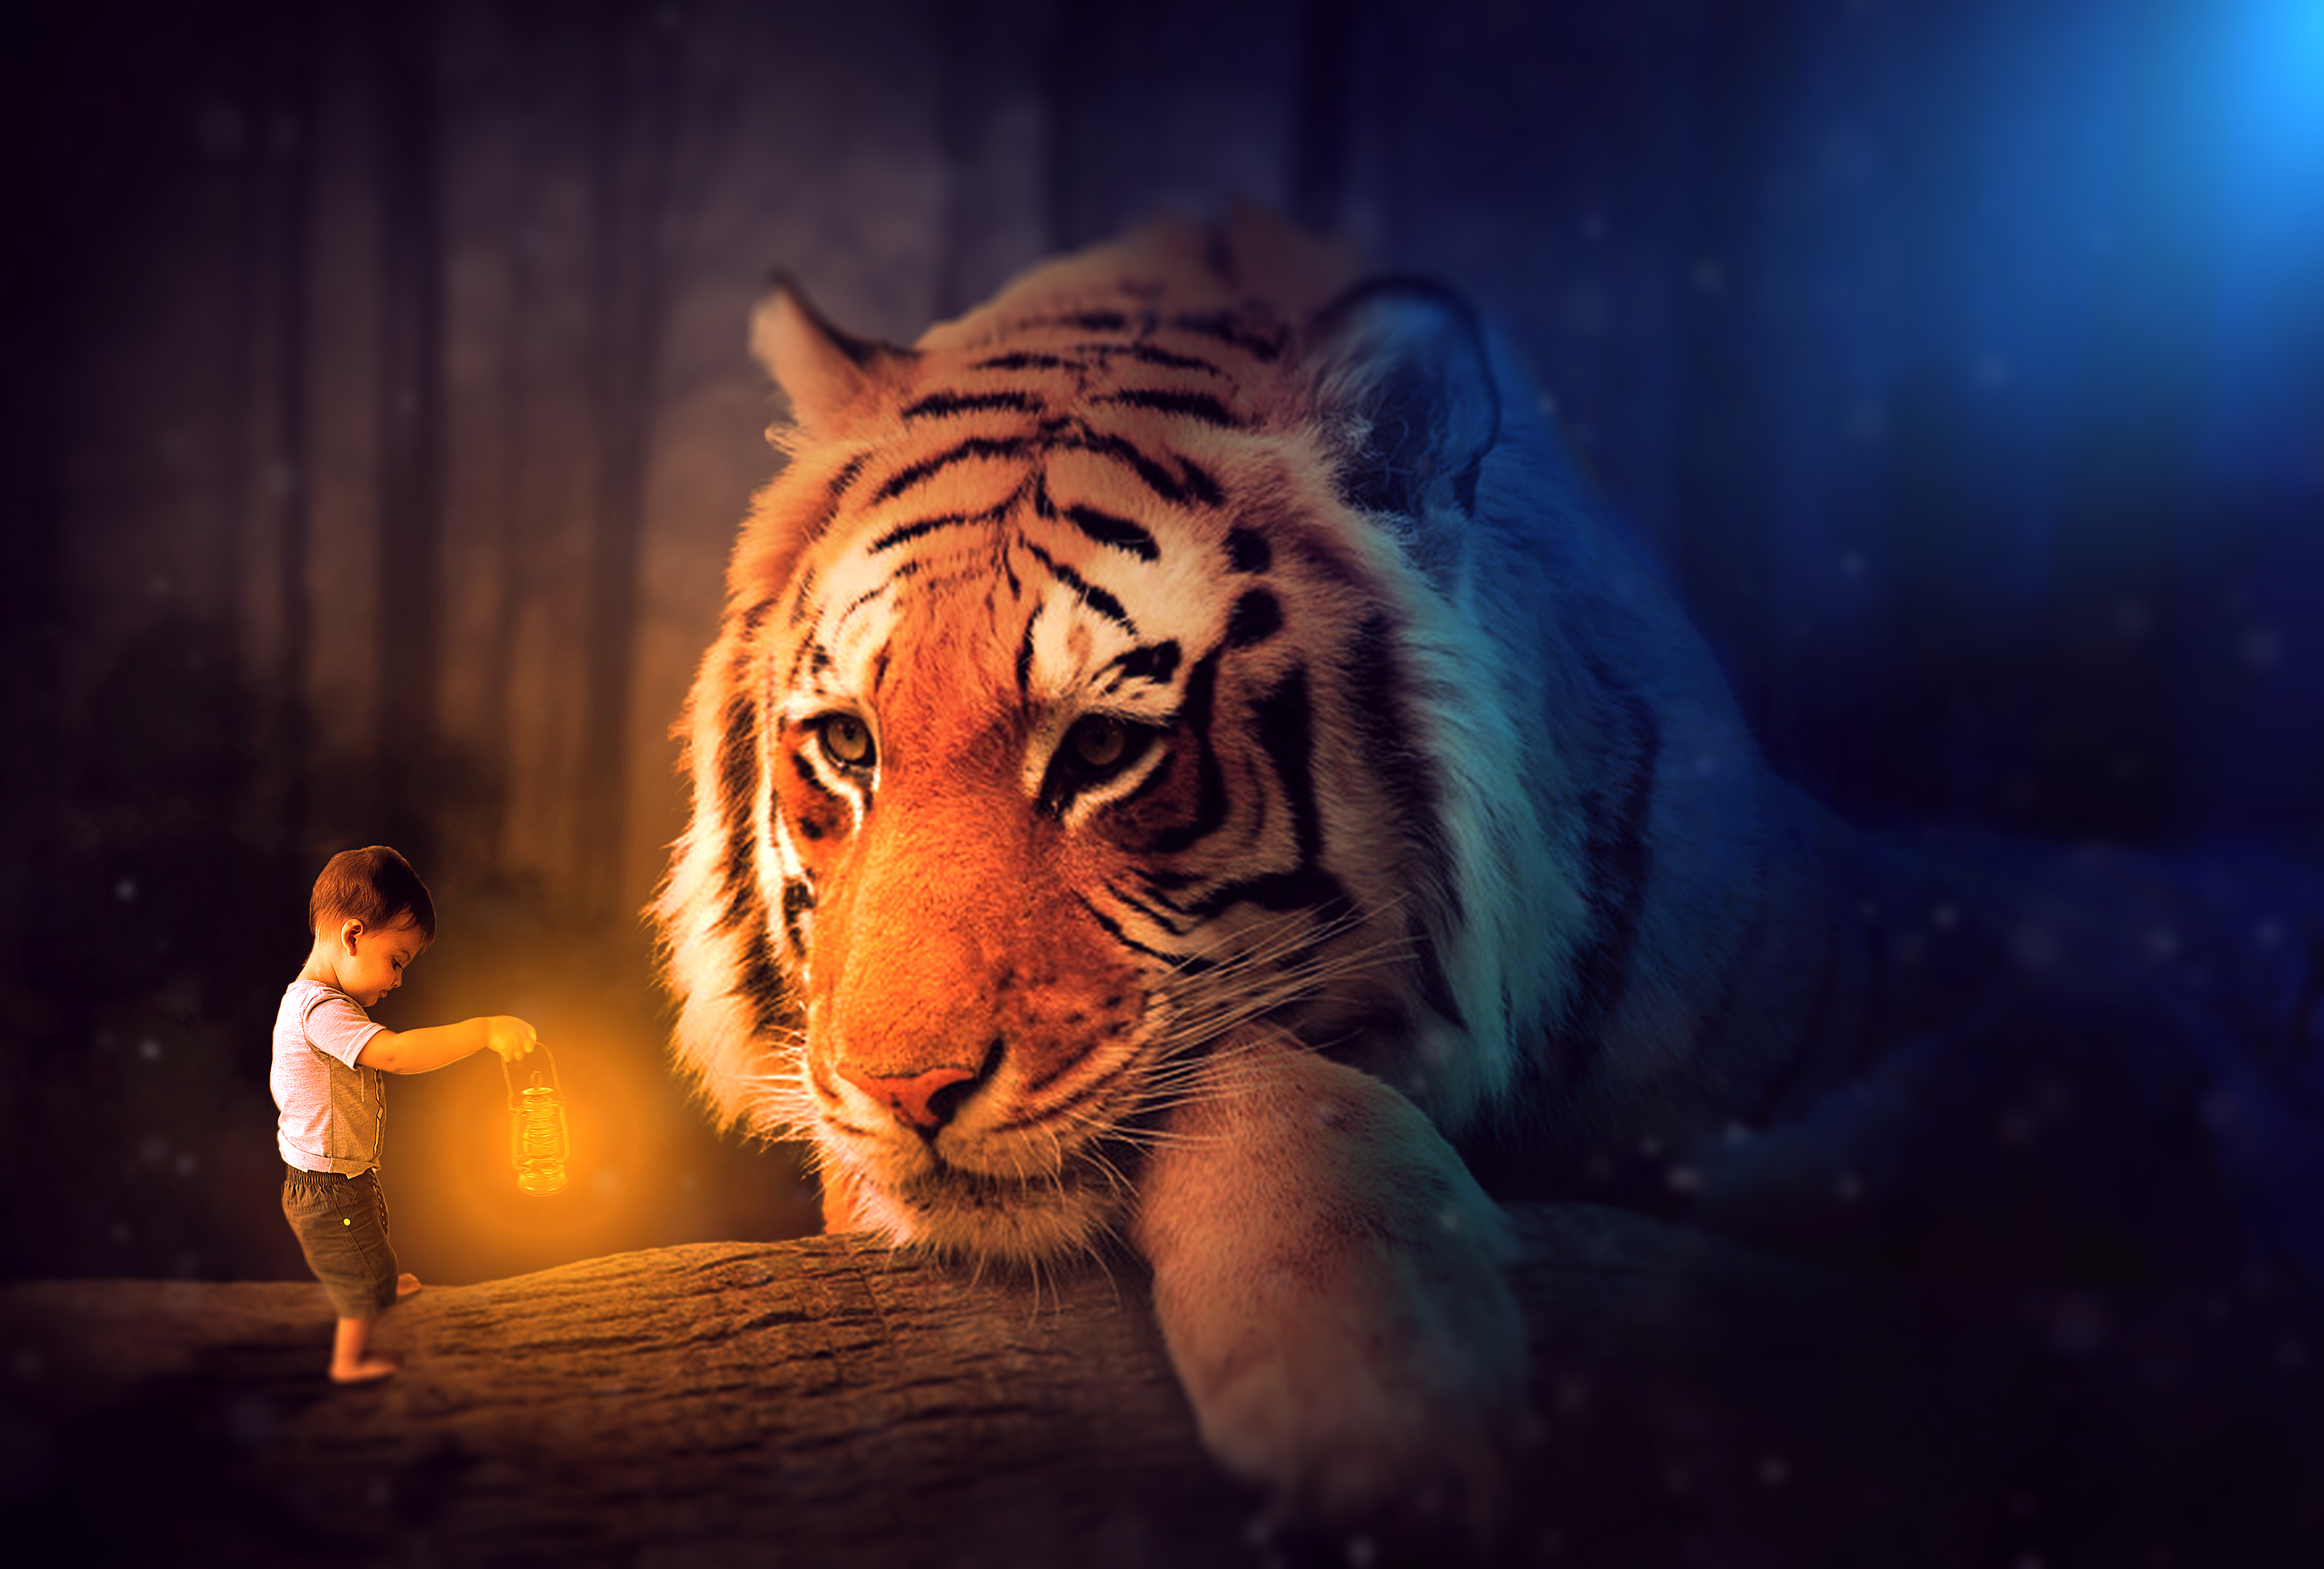 Oliver Tiger - Photo Manipulation